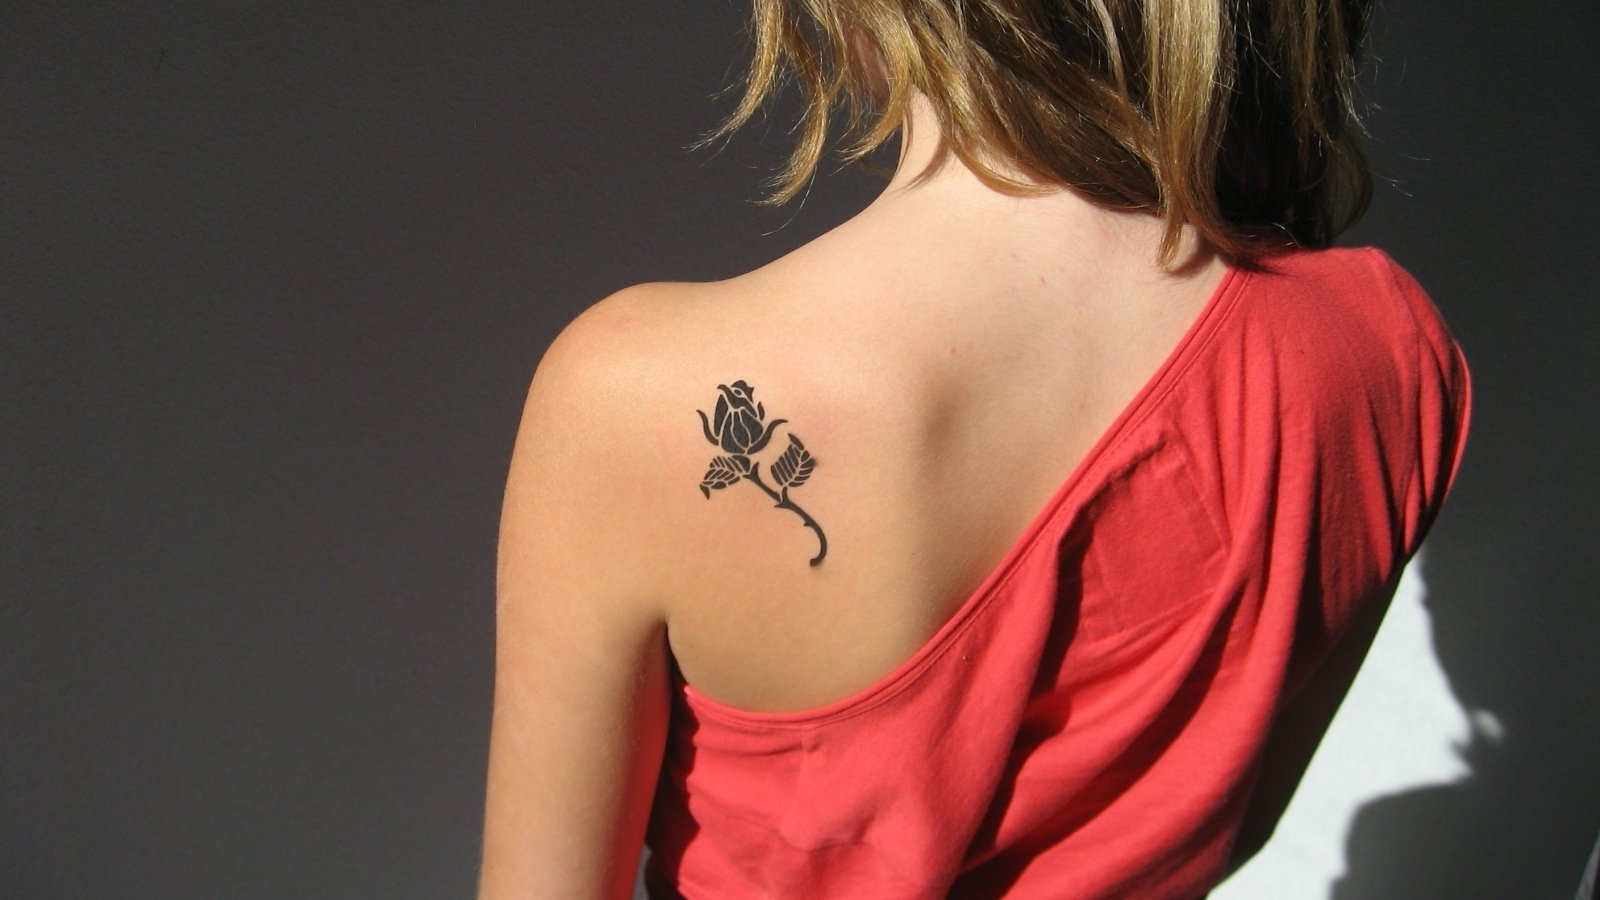 10 Attractive Tattoo Ideas For Shoulder Blade girl tattoos on shoulder blade 30 small cute tattoos for girls 2020